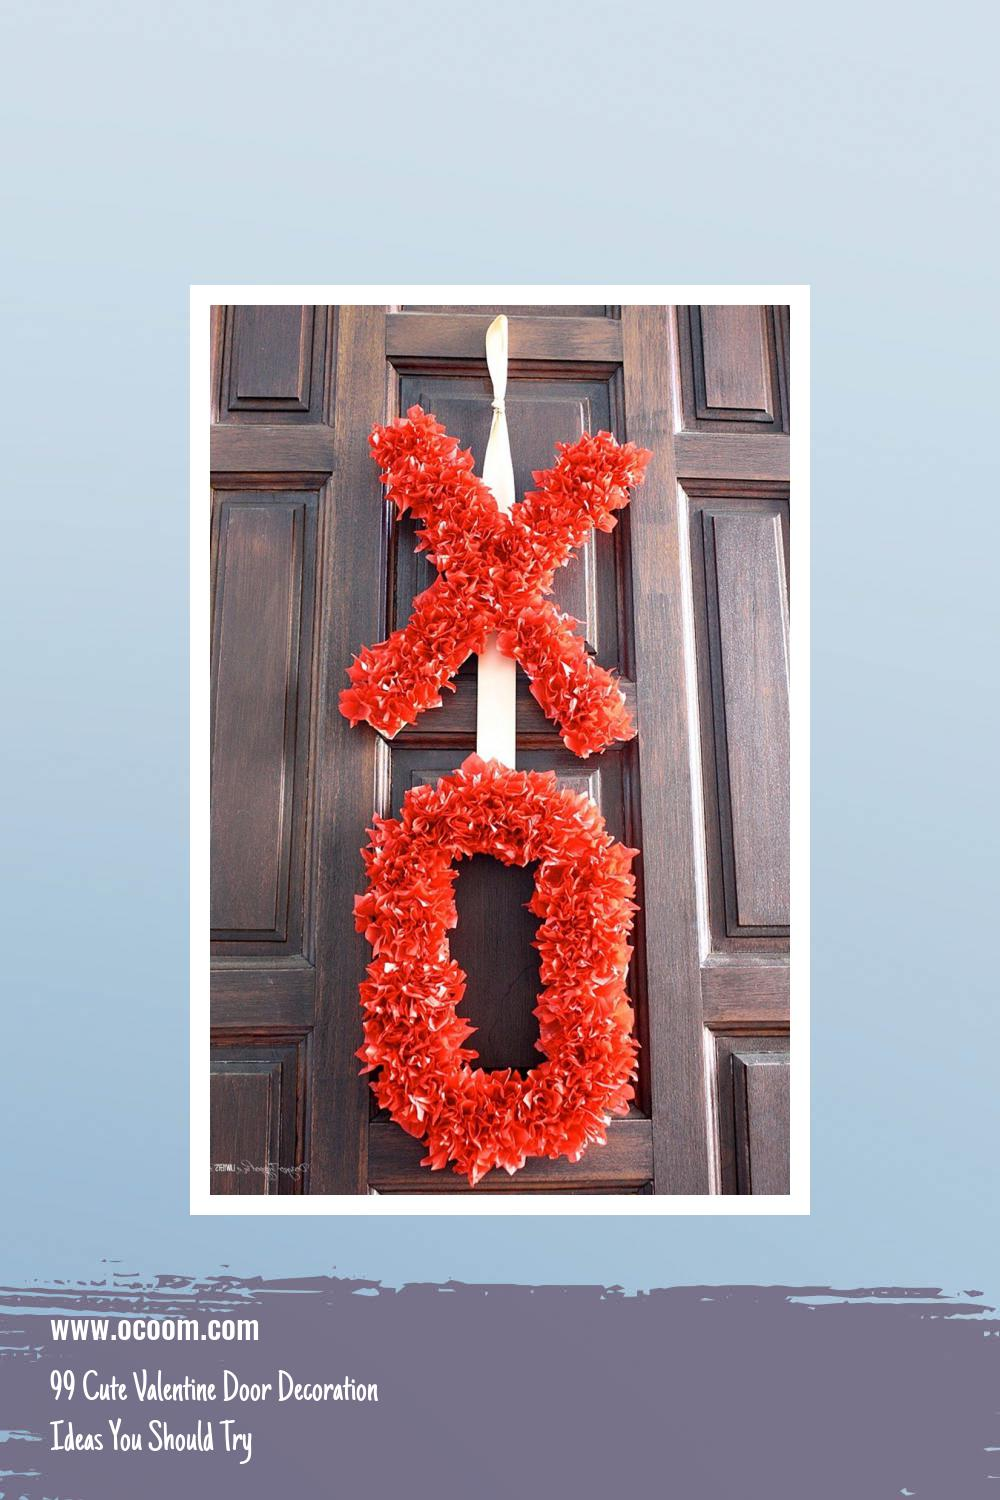 99 Cute Valentine Door Decoration Ideas You Should Try 39